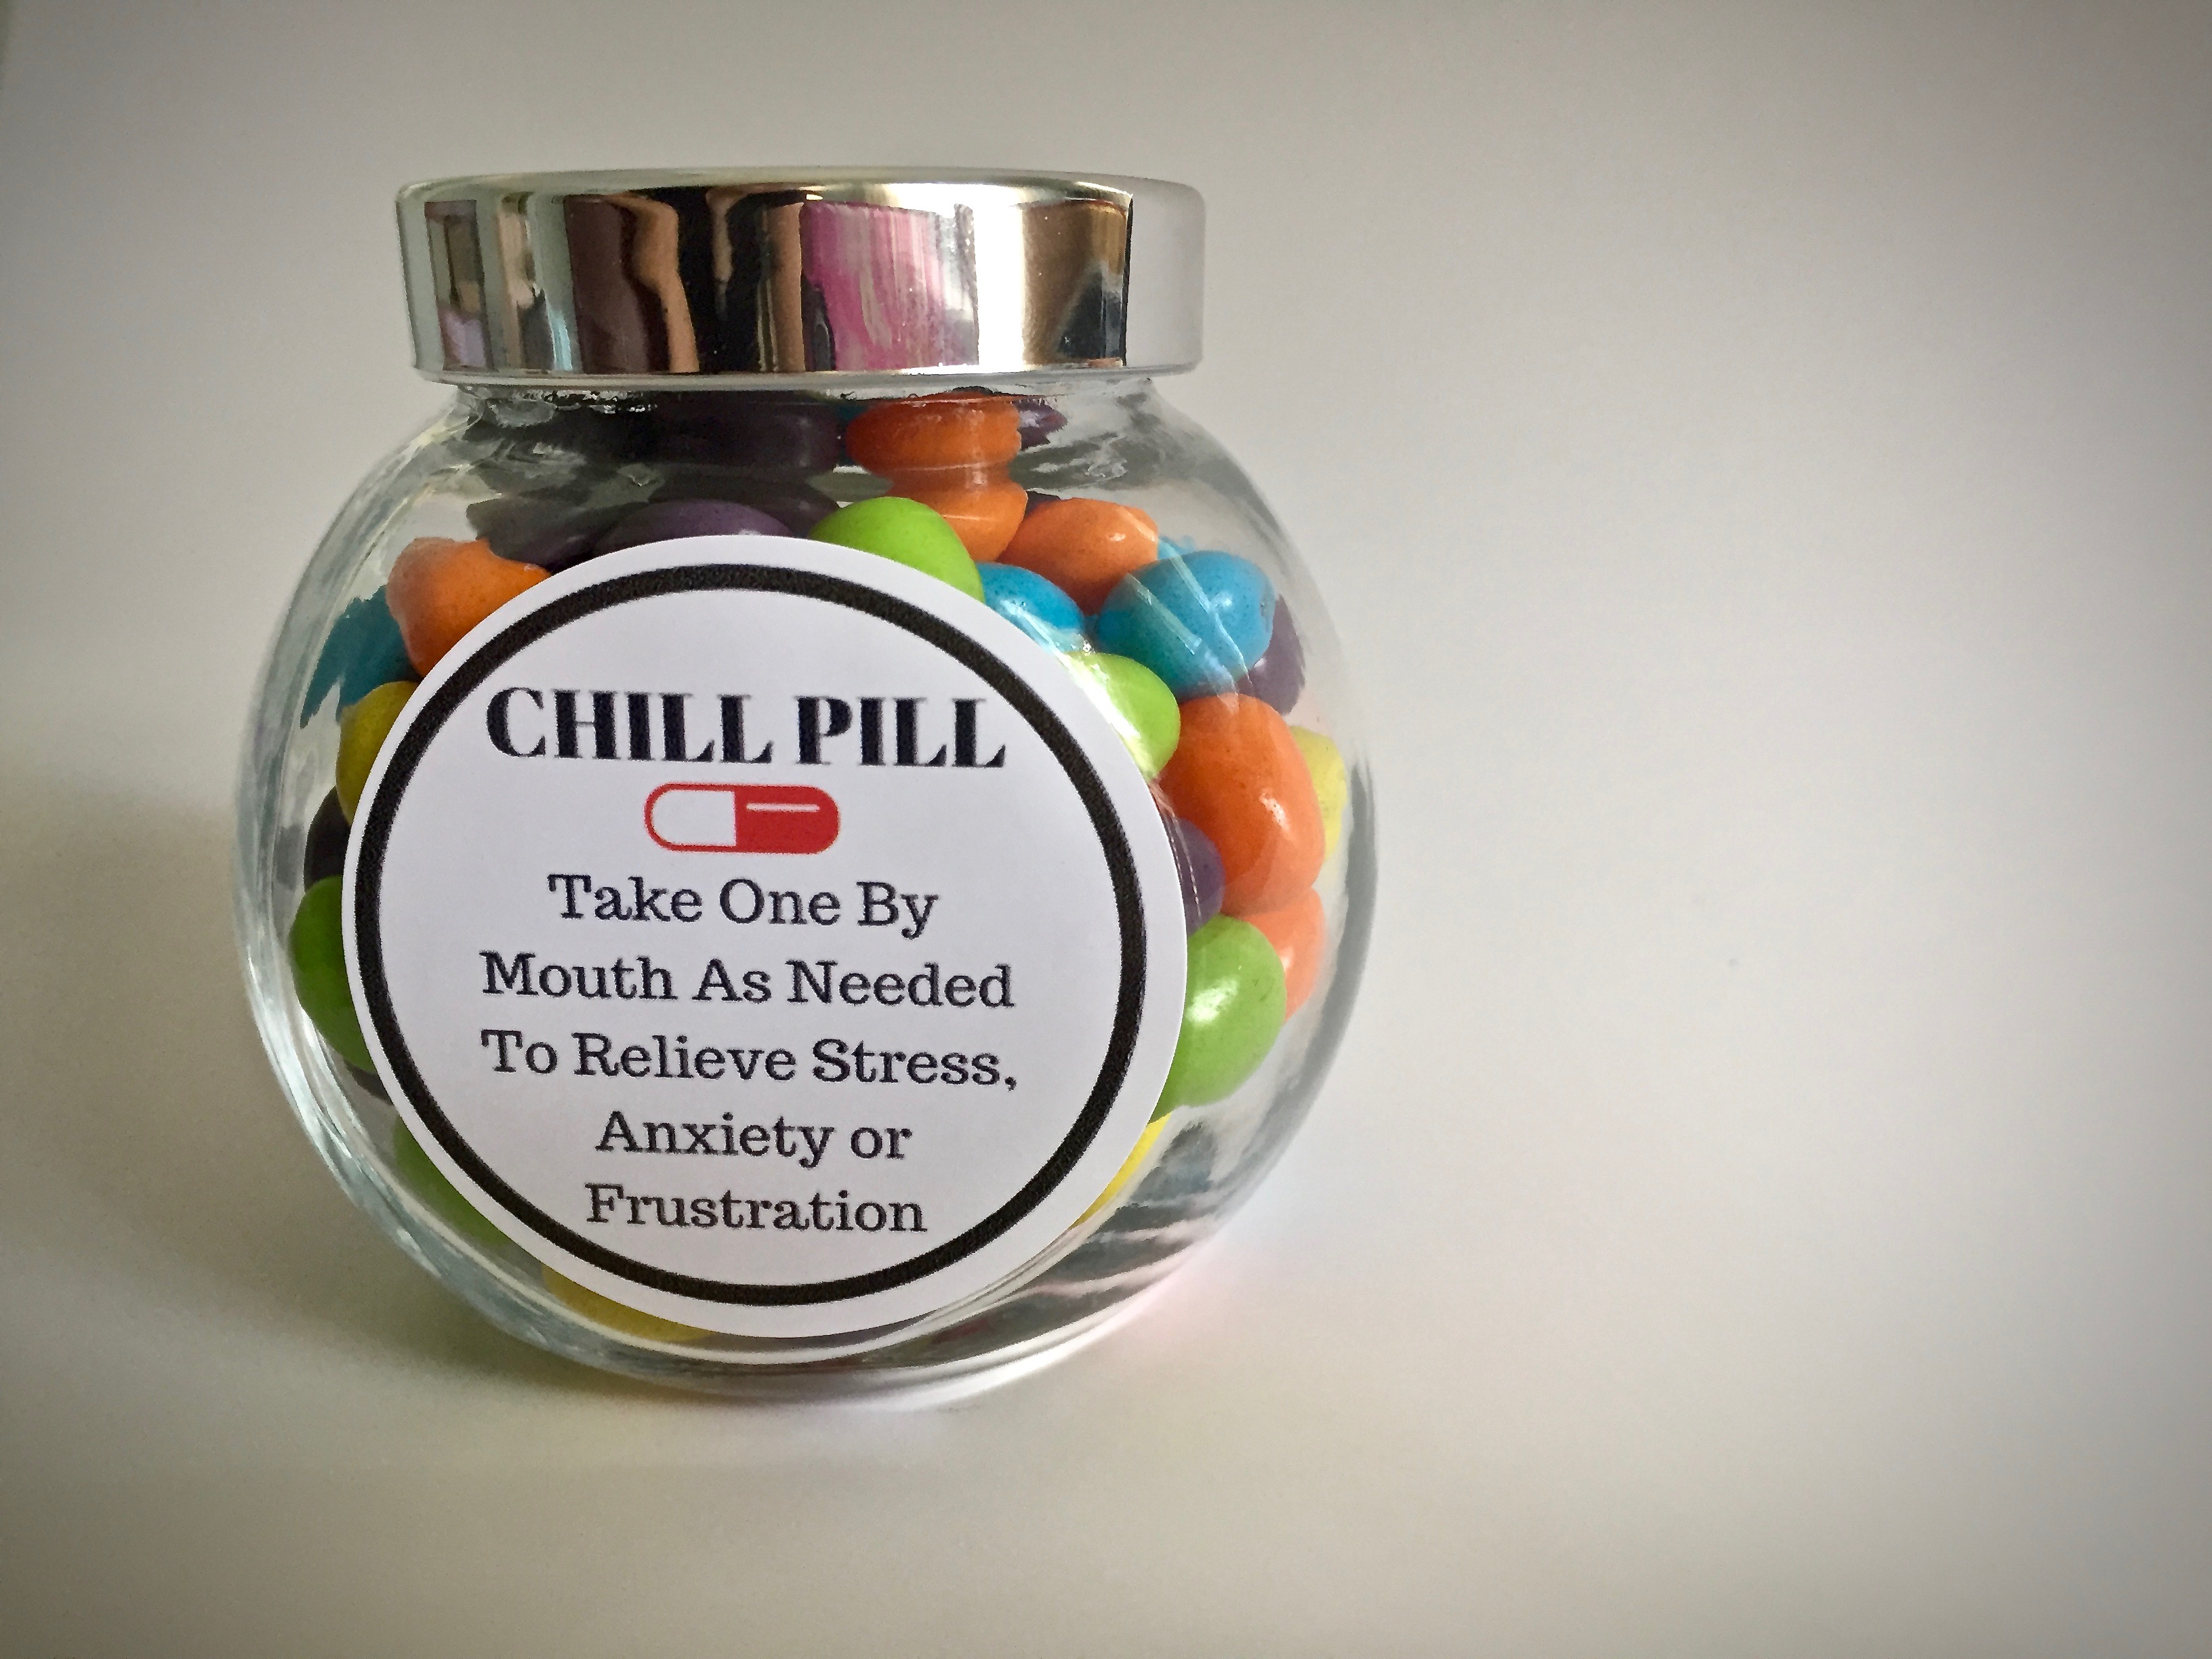 photo about Printable Chill Pill Label identified as Chill Products Label YZ67 Advancedmagebysara